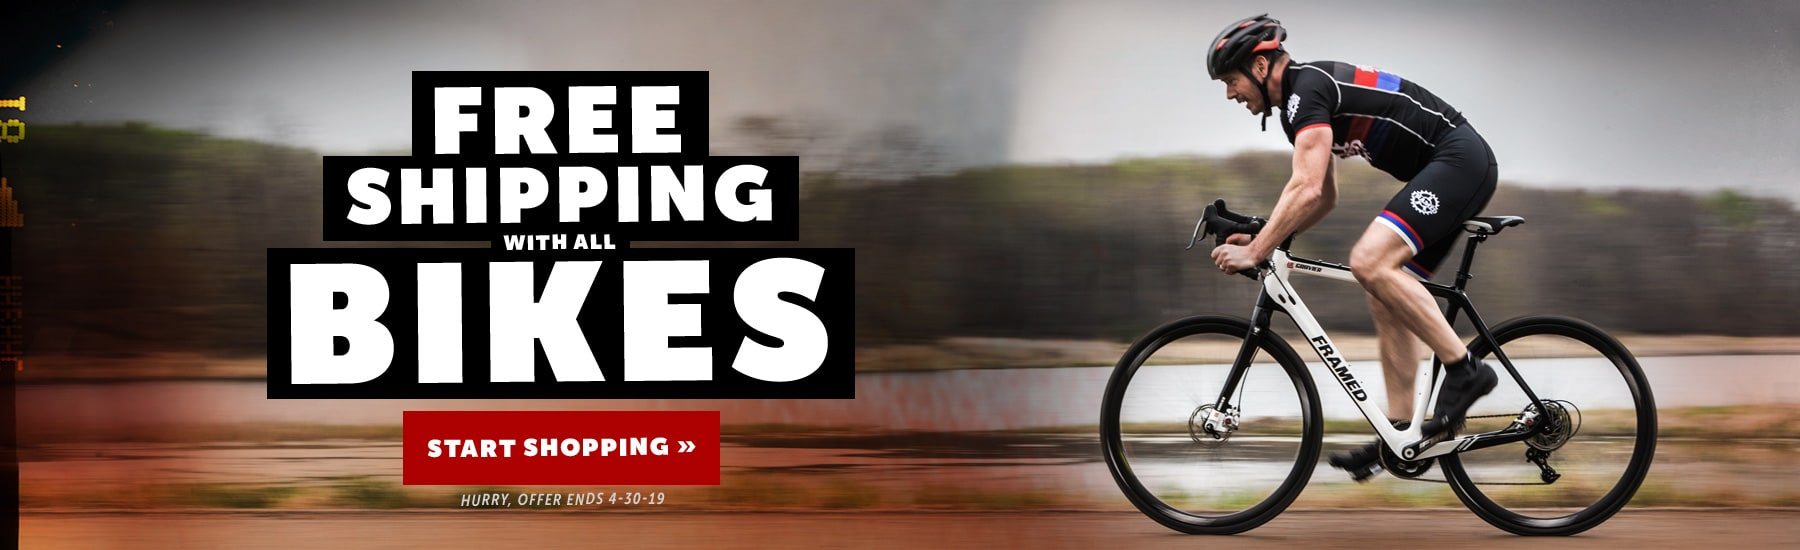 Free Shipping All Bikes